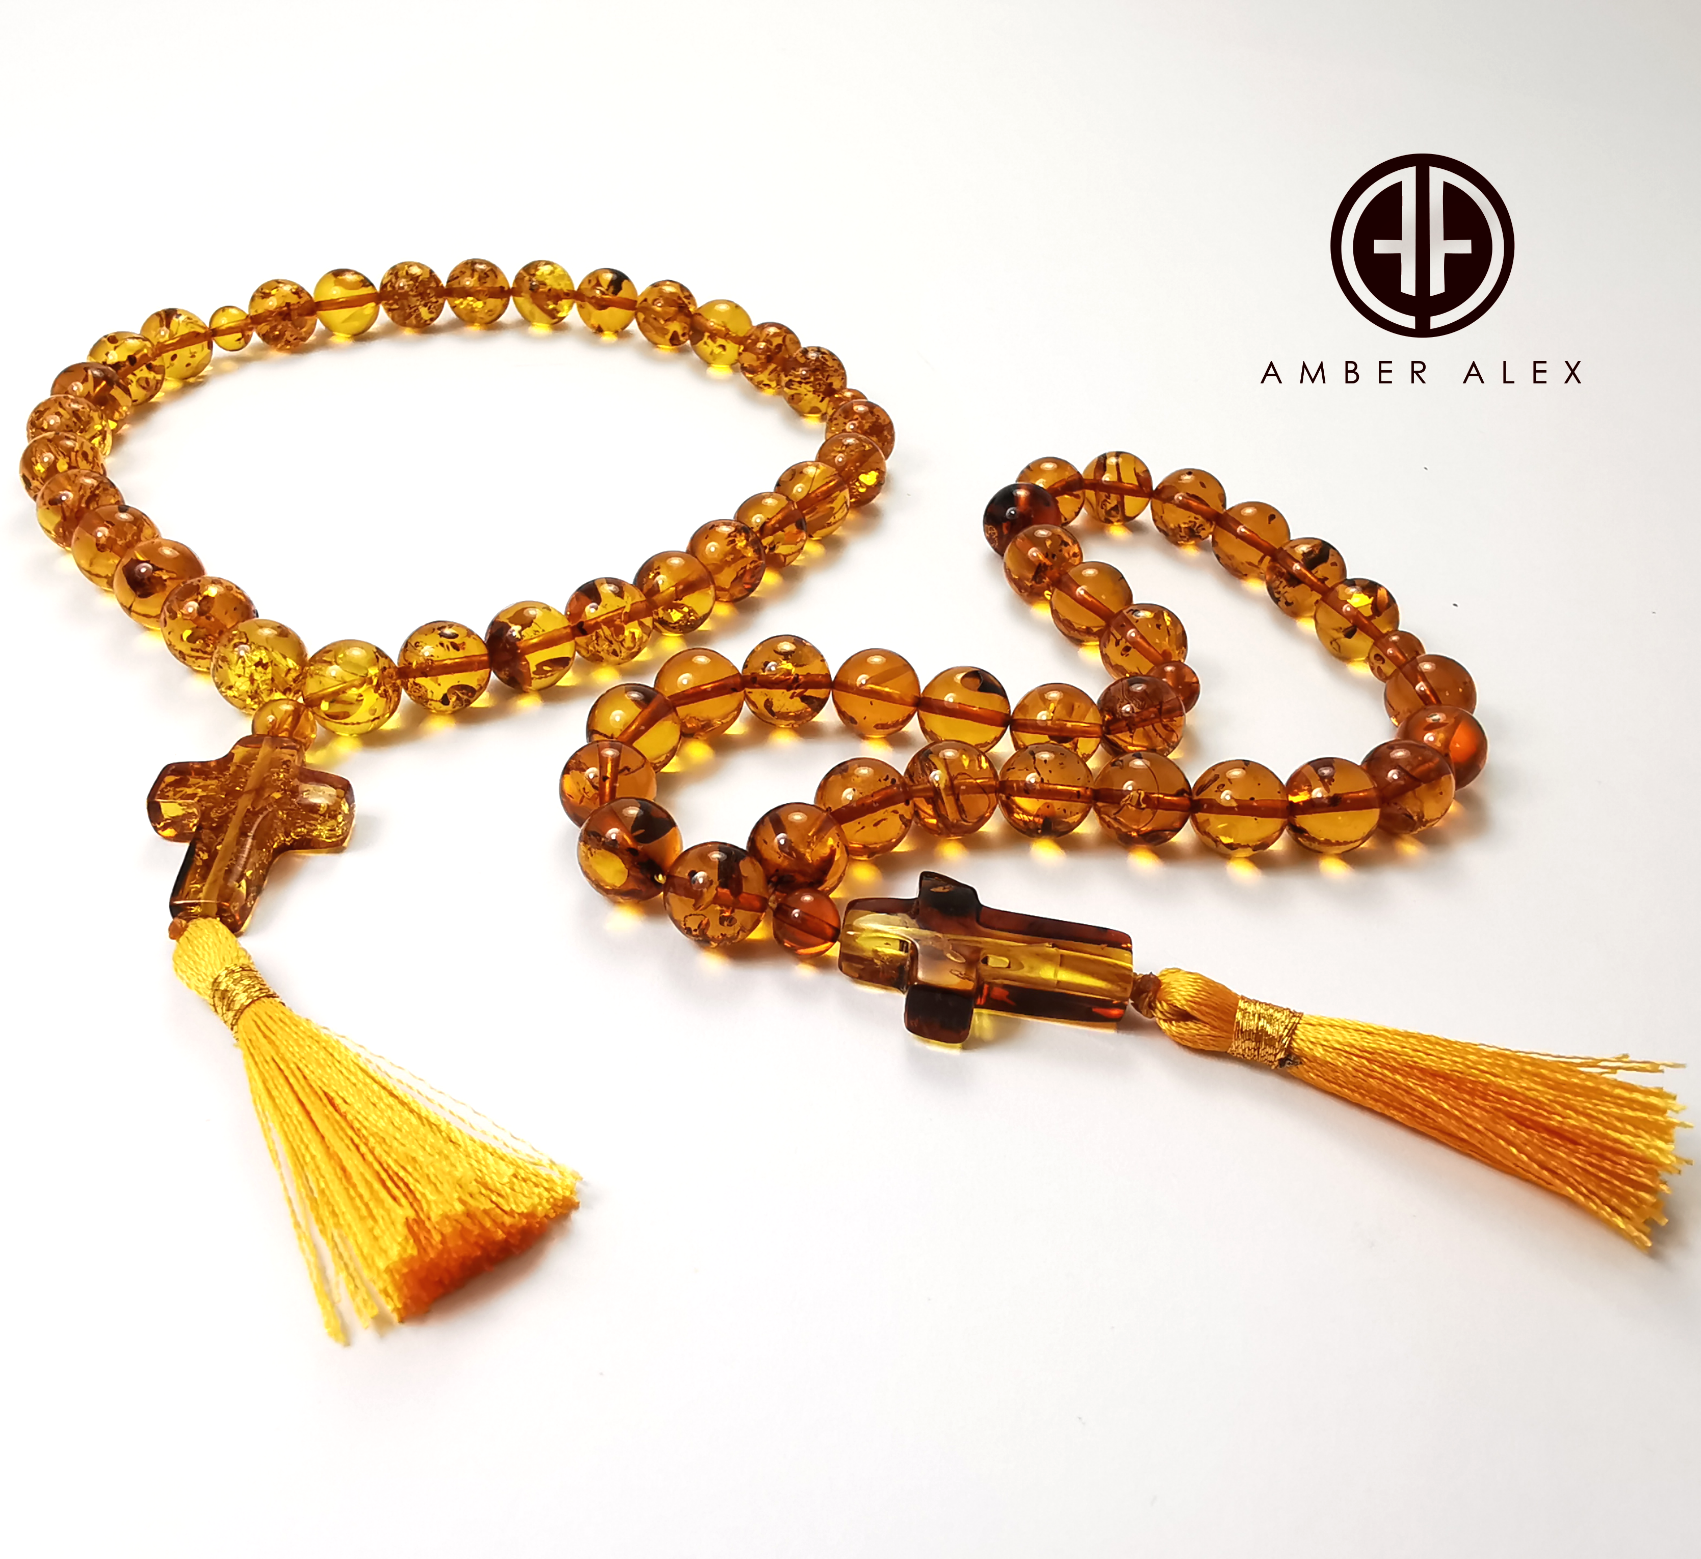 Cognac Amber Round Beads Orthodox Christian Rosary With Cross Pendant